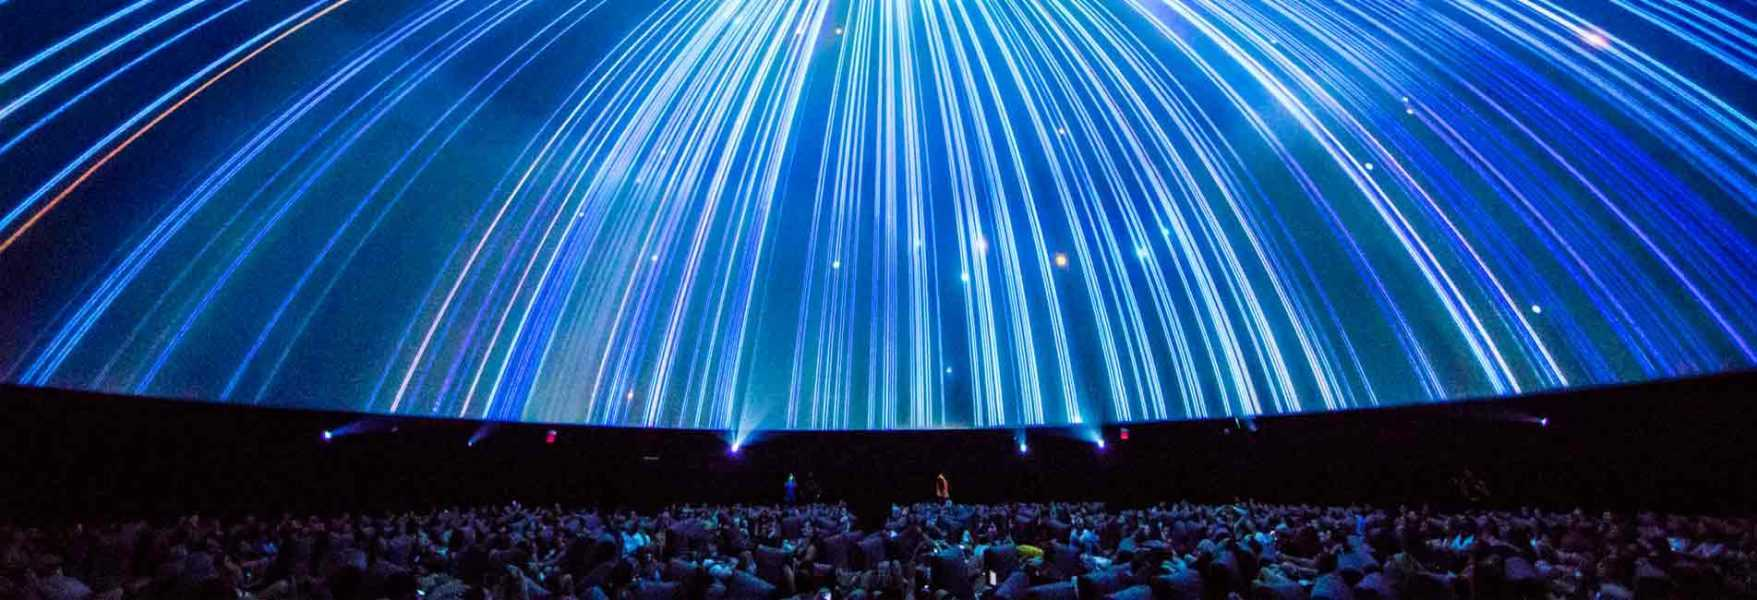 Obscura Digital Projection Dome